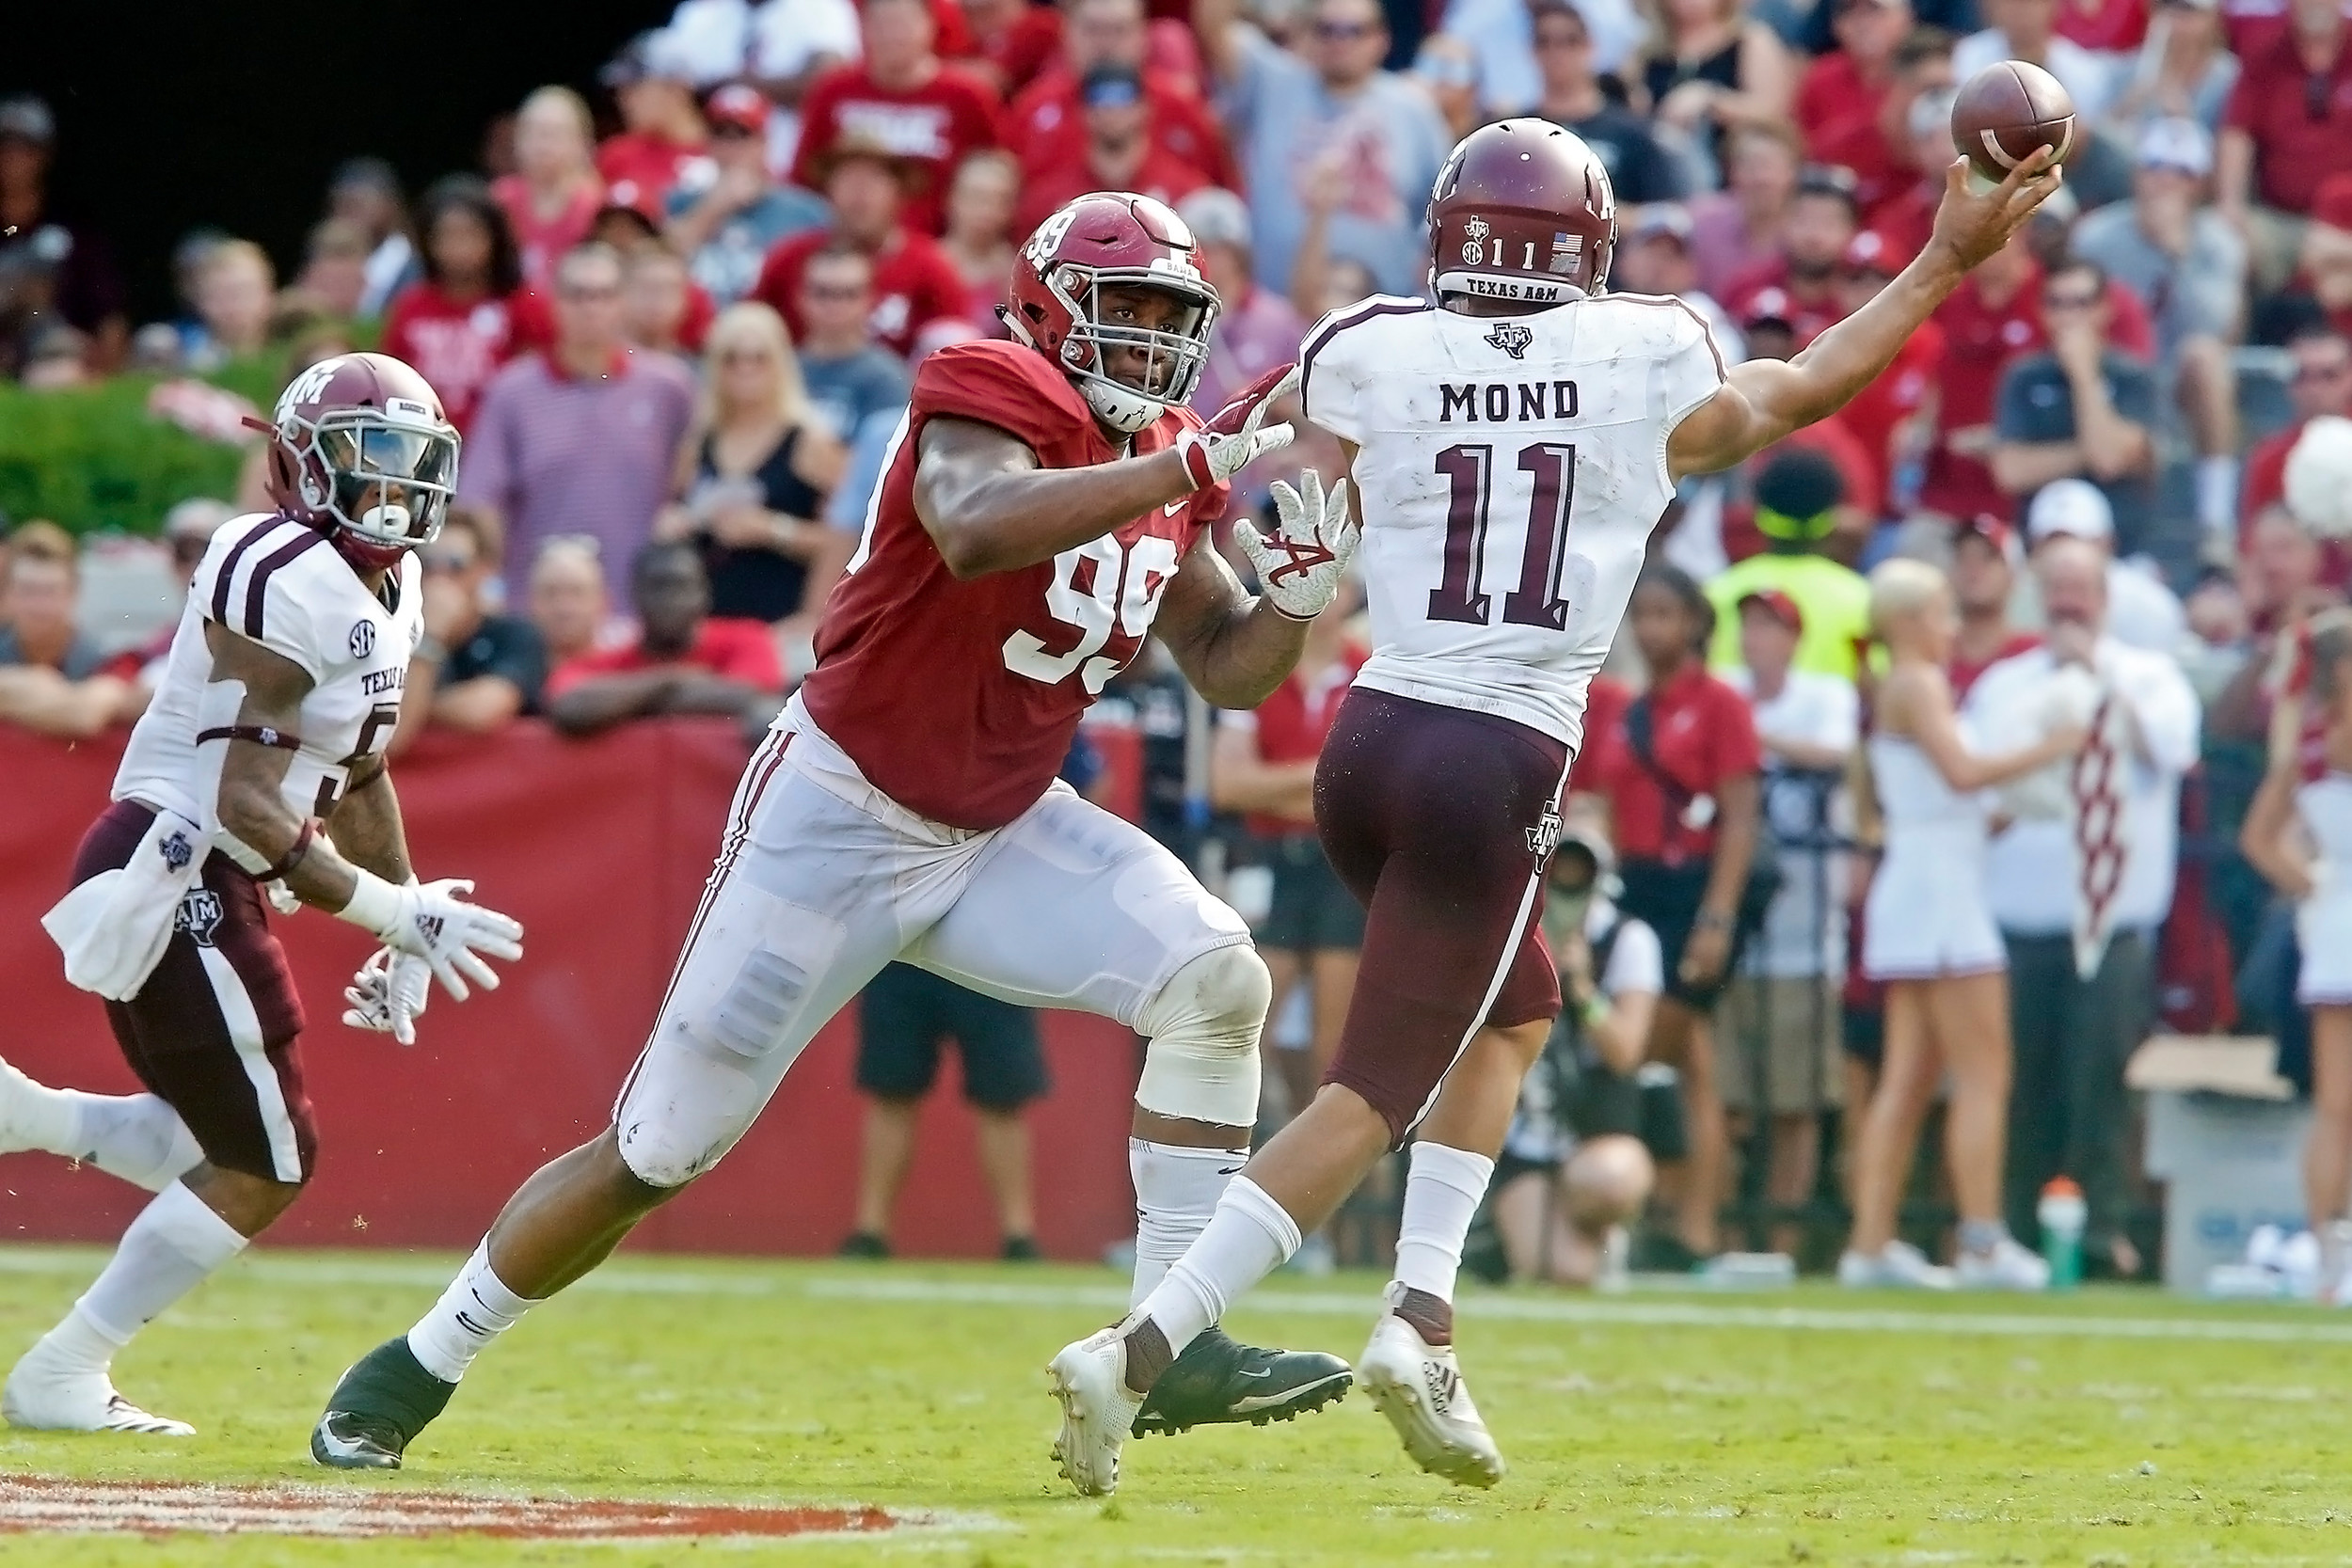 Alabama Crimson Tide defensive lineman Raekwon Davis (99) pressures Texas A&M Aggies quarterback Kellen Mond (11) during the game between the Texas A&M Aggies and the University of Alabama Crimson Tide at Bryant-Denny Stadium.  Jason Clark / Daily Mountain Eagle